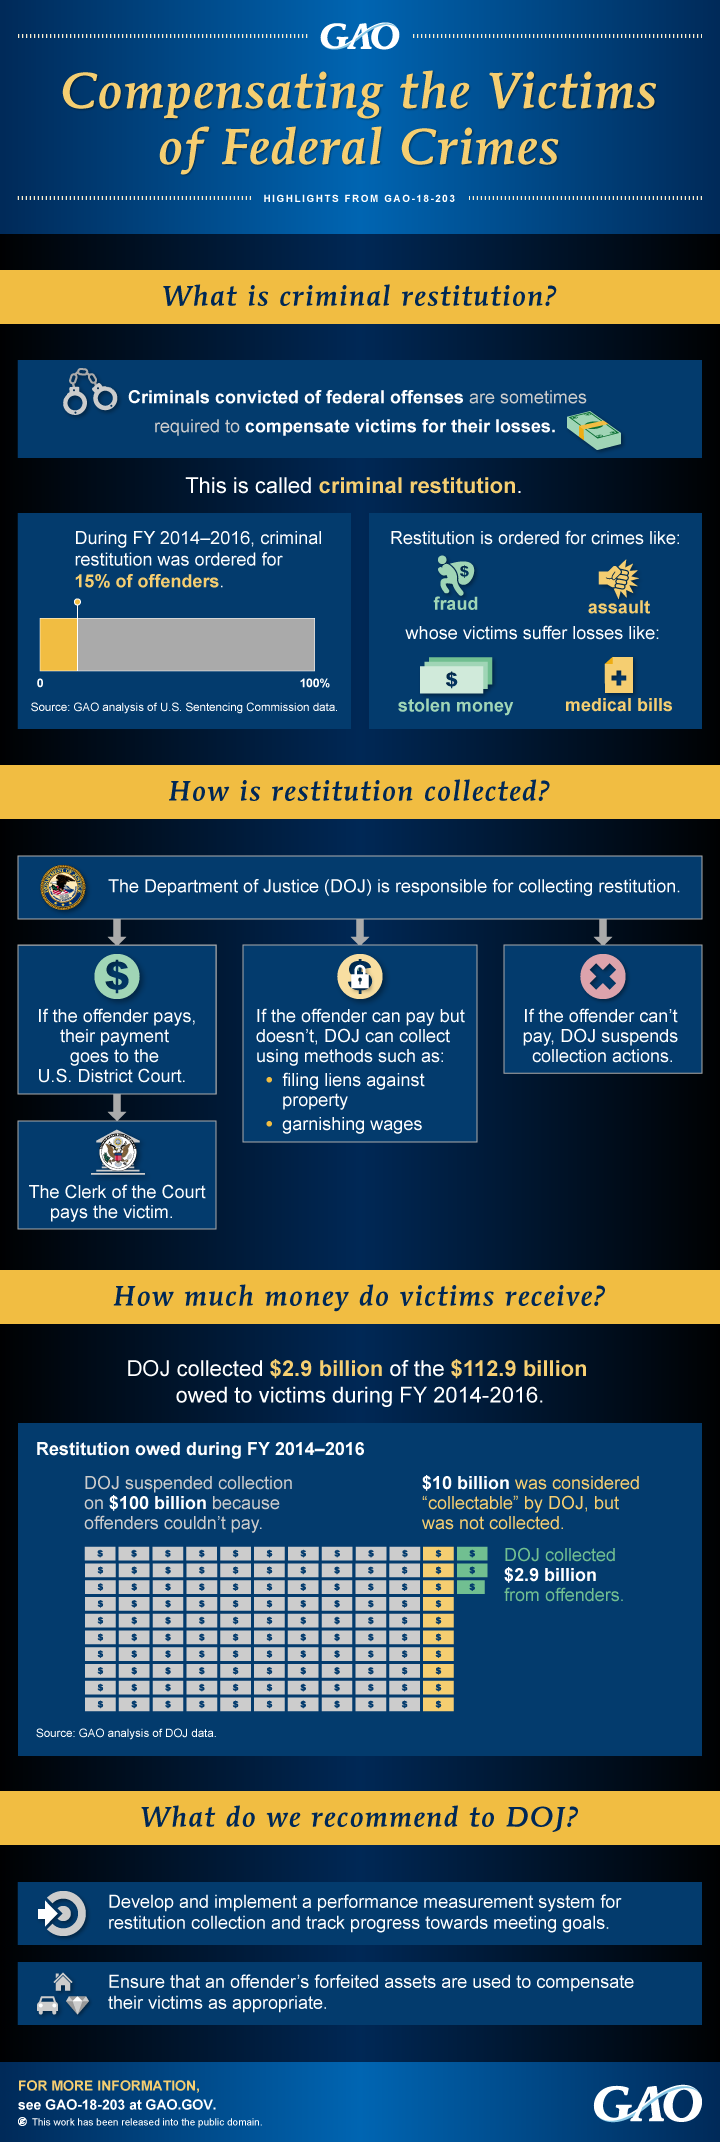 INFOGRAPHIC: Compensating the Victims of Federal Crimes